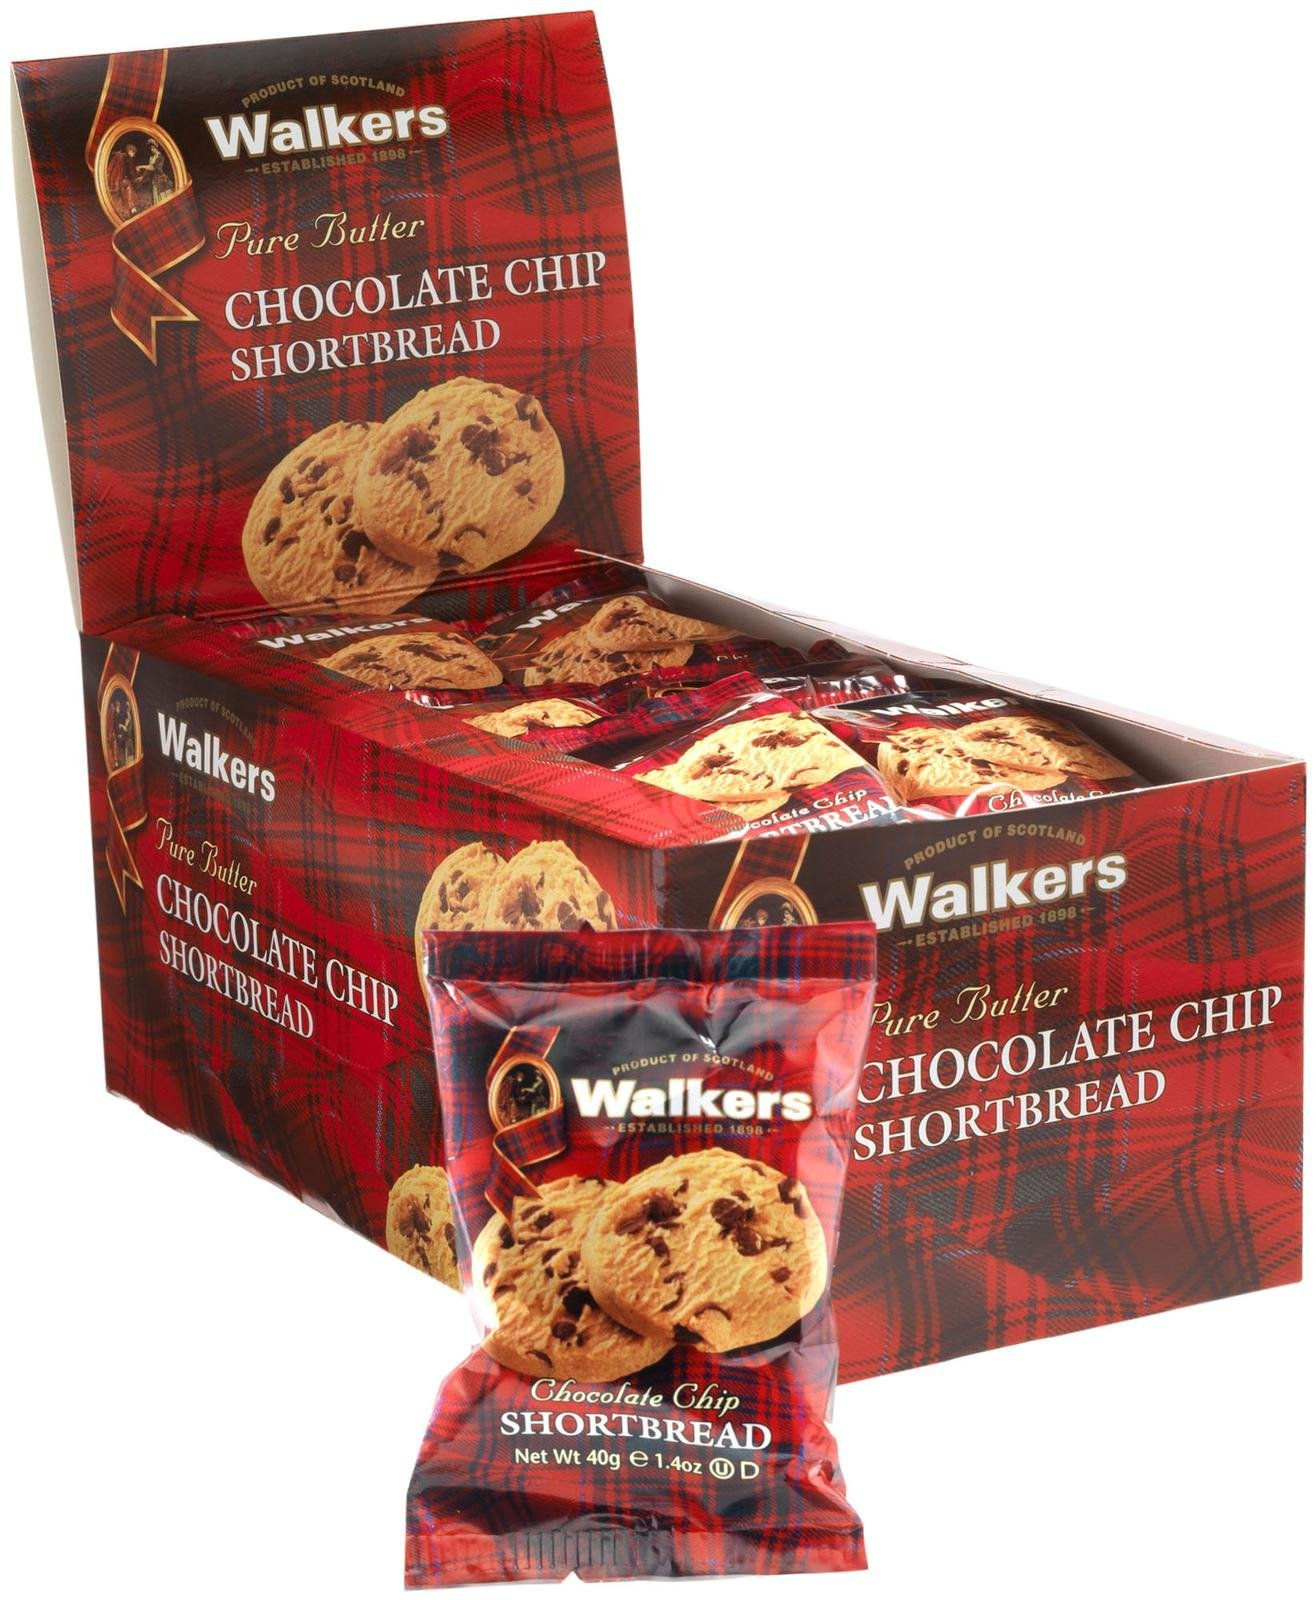 Walkers 2 Piece Shortbread Chocolate Chip Cookies, 0.24 Pound